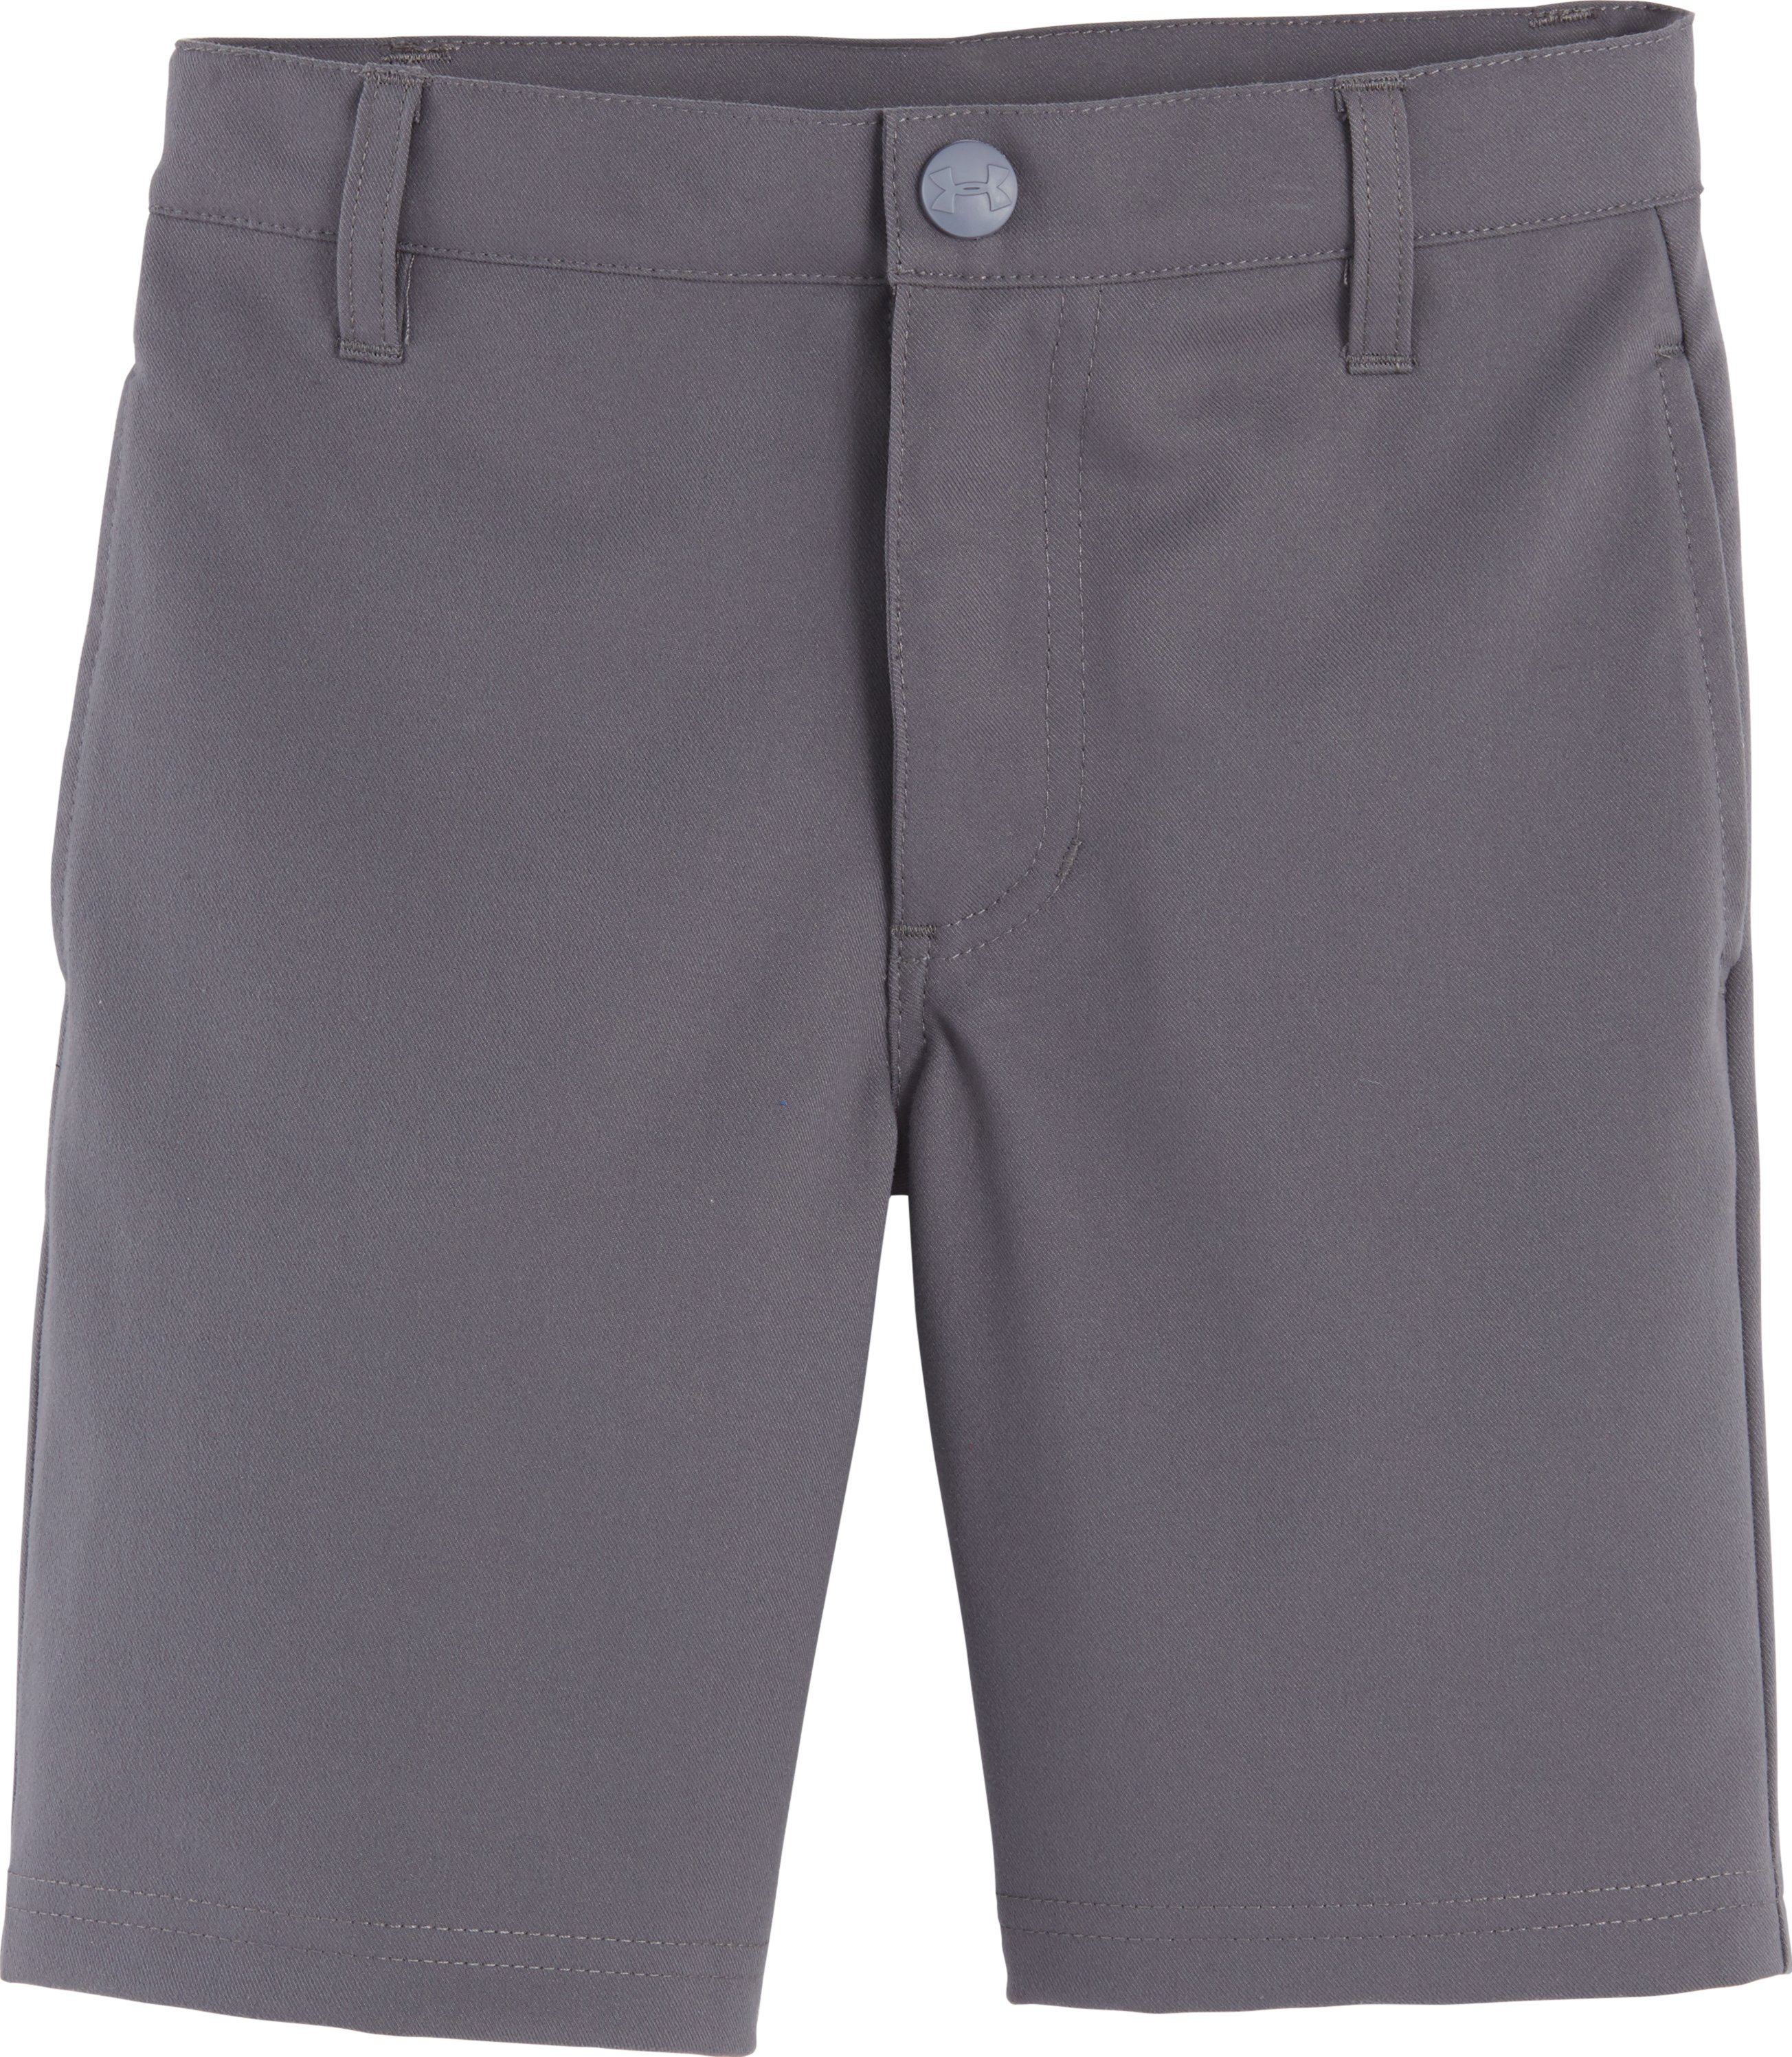 Boys' Pre-School UA Golf Medal Play Shorts, Graphite